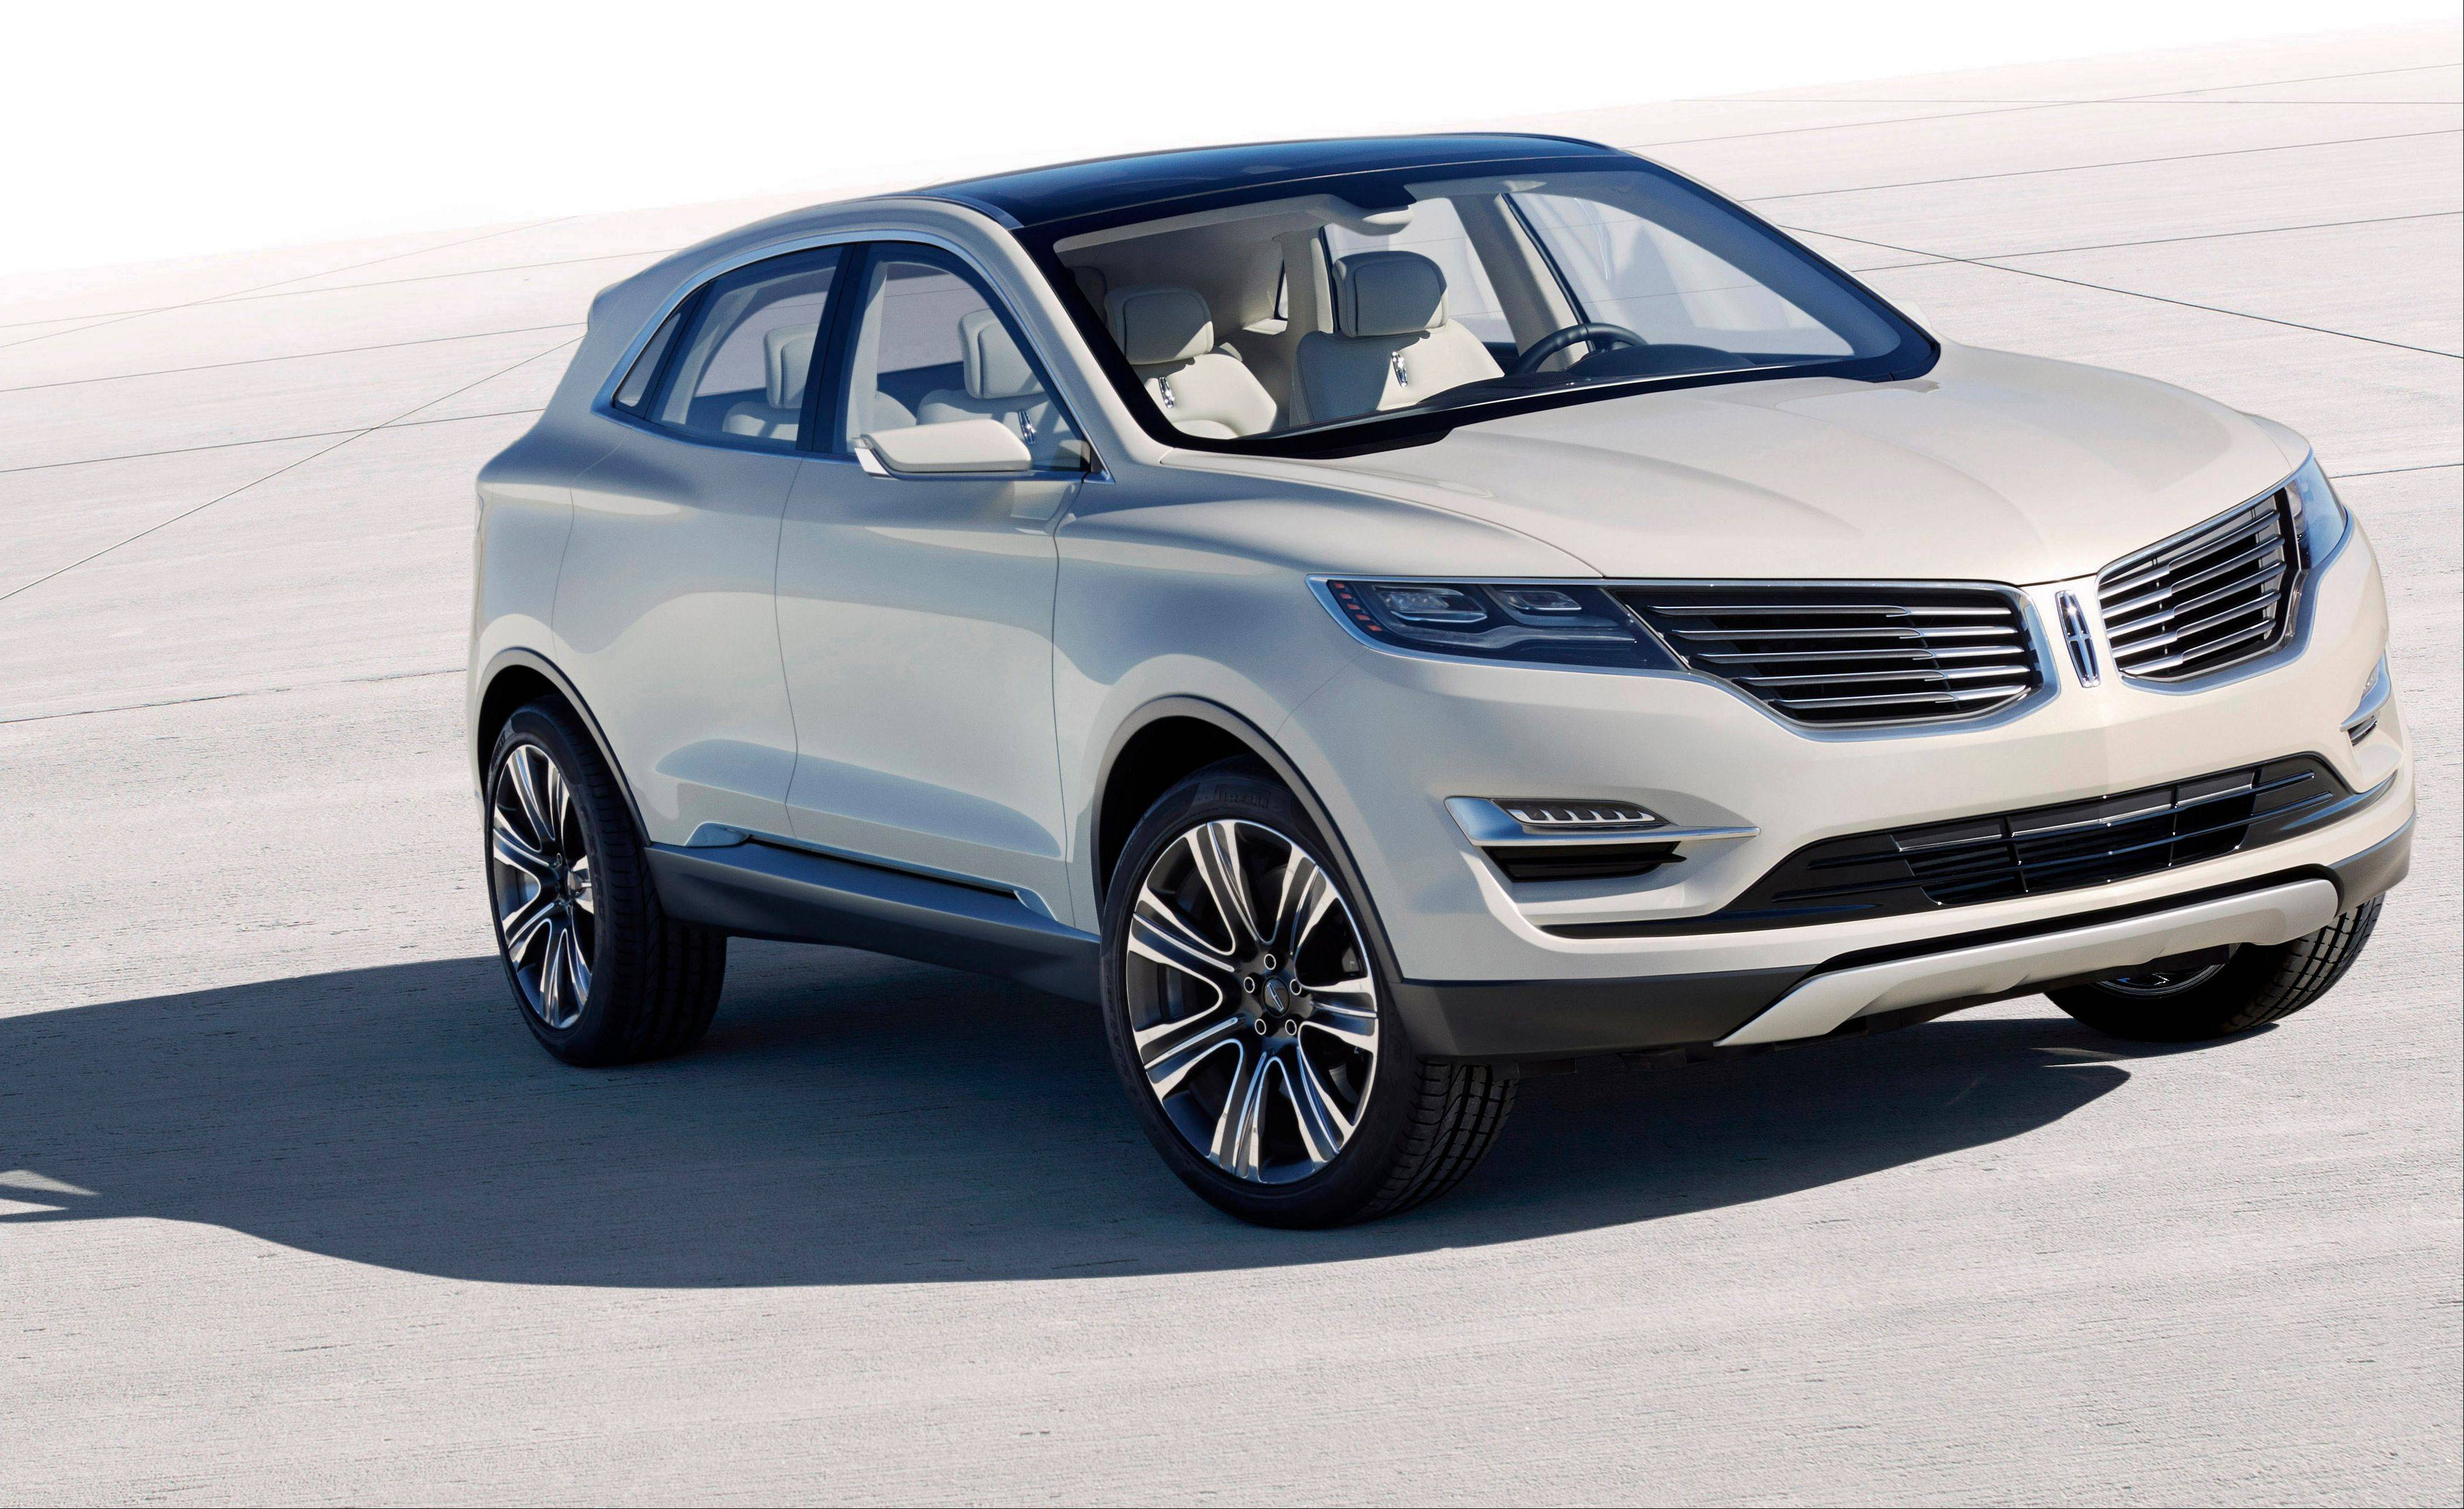 In a photo provided by the Ford Motor Co., the Lincoln MKC Concept, a small luxury utility is shown.